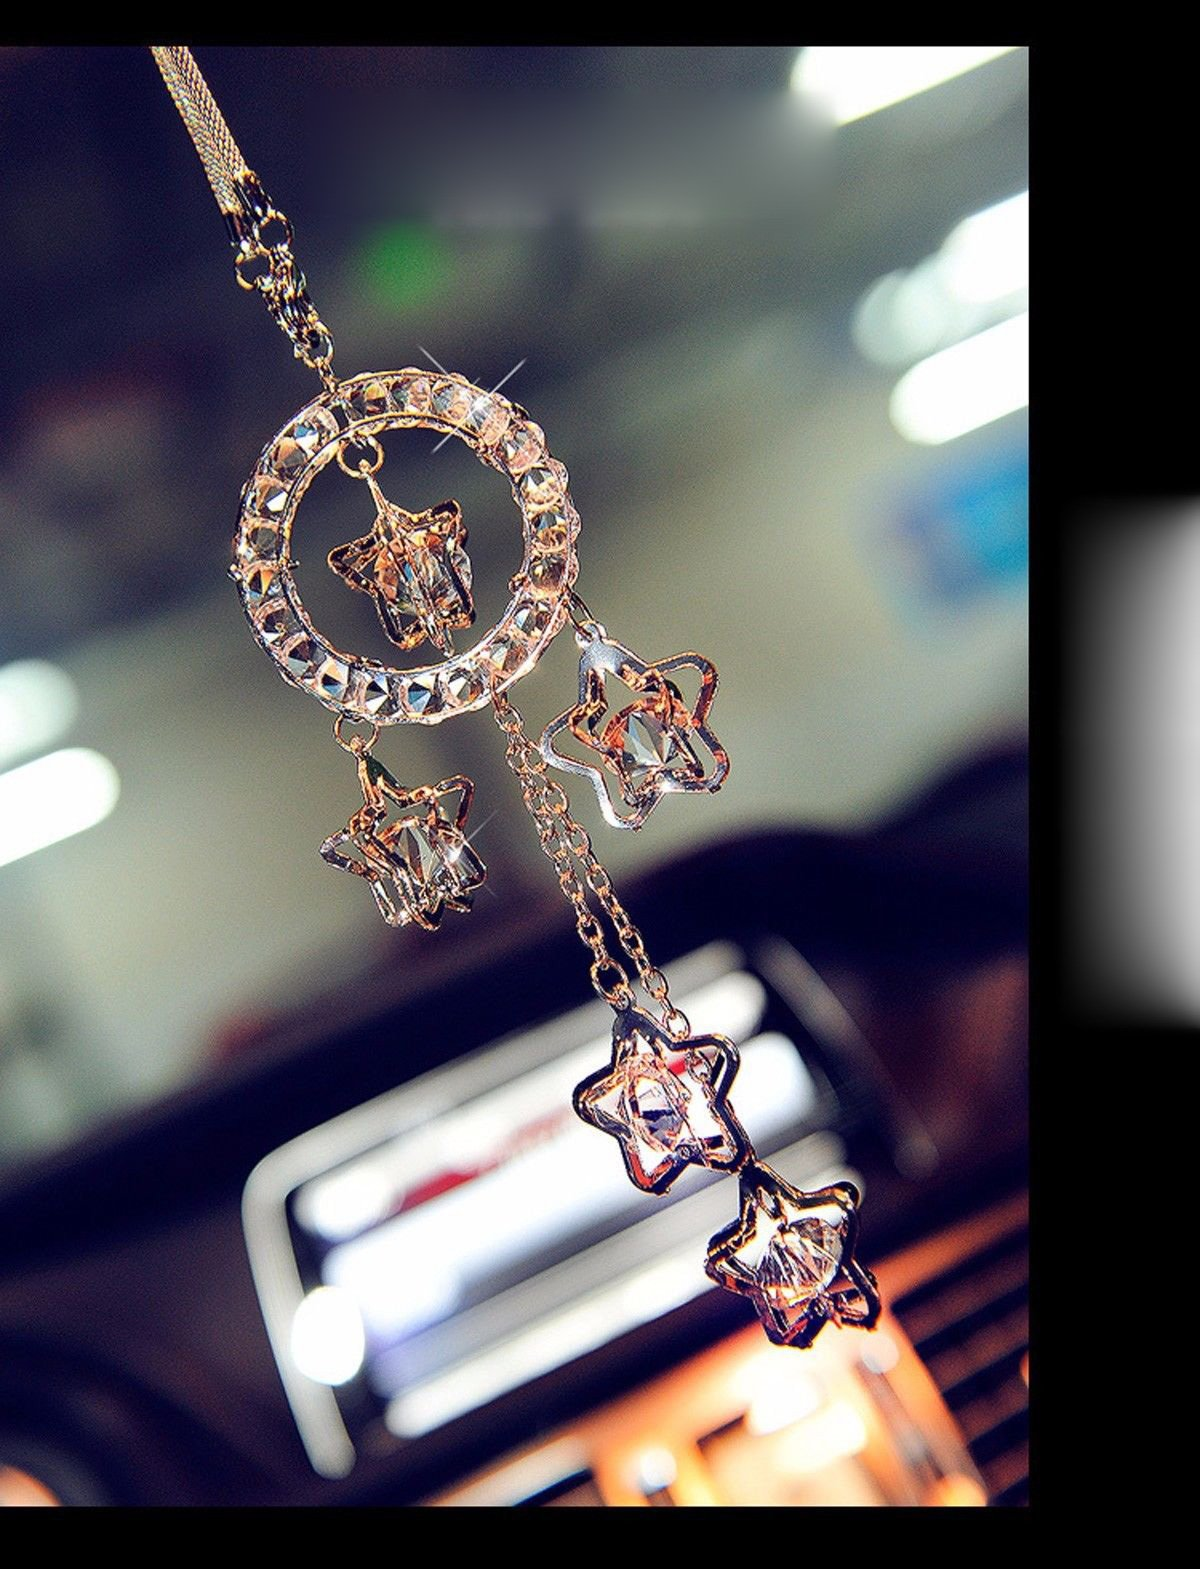 Car interior hanging - Fashion Car Rearview Mirror Hanging Ornament Car Interior Decor Crystal Charm Pendant Car Accessories Gift Present New Free Shipping From The Usa